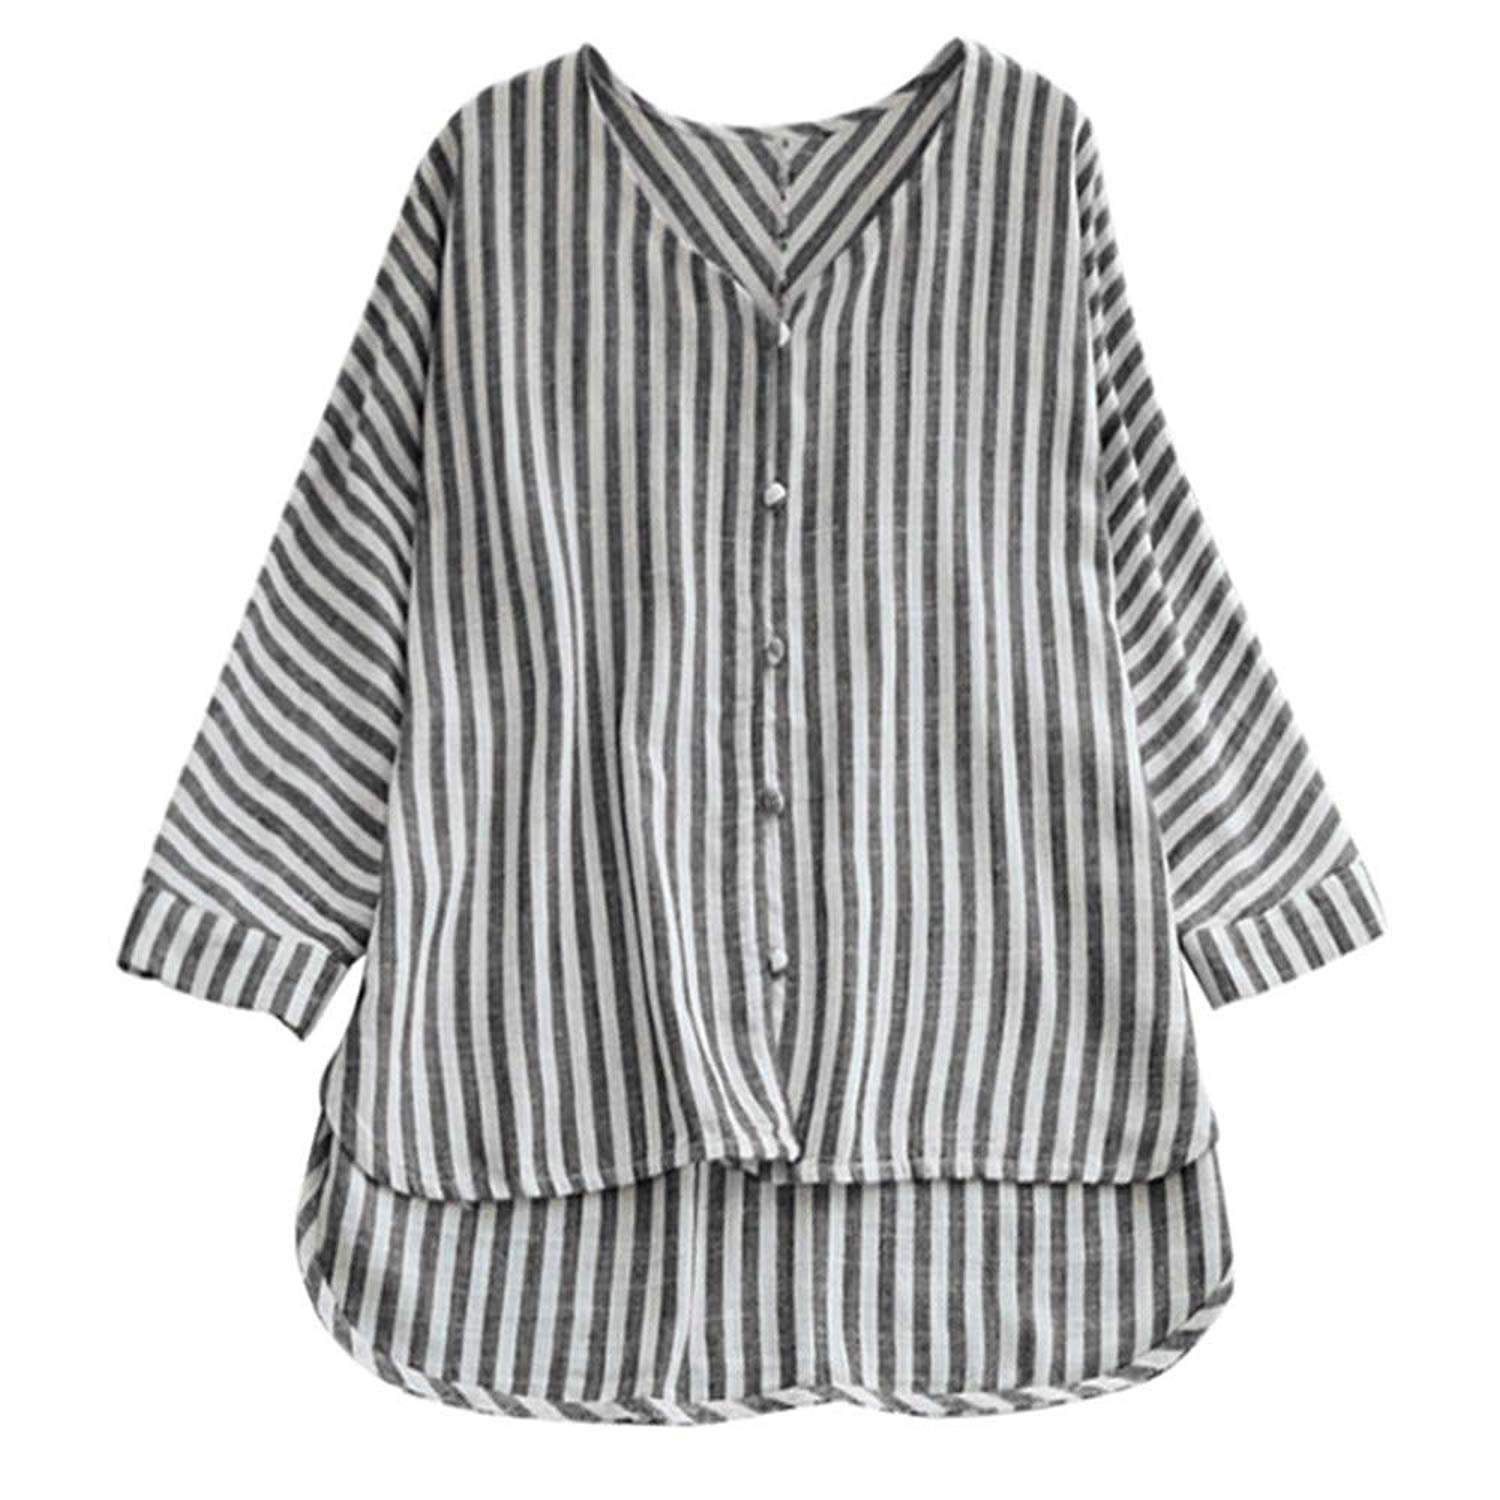 MODOQO Women's Striped Tops Blouse 3/4 Sleeve V Neck Button Casual T-Shirt